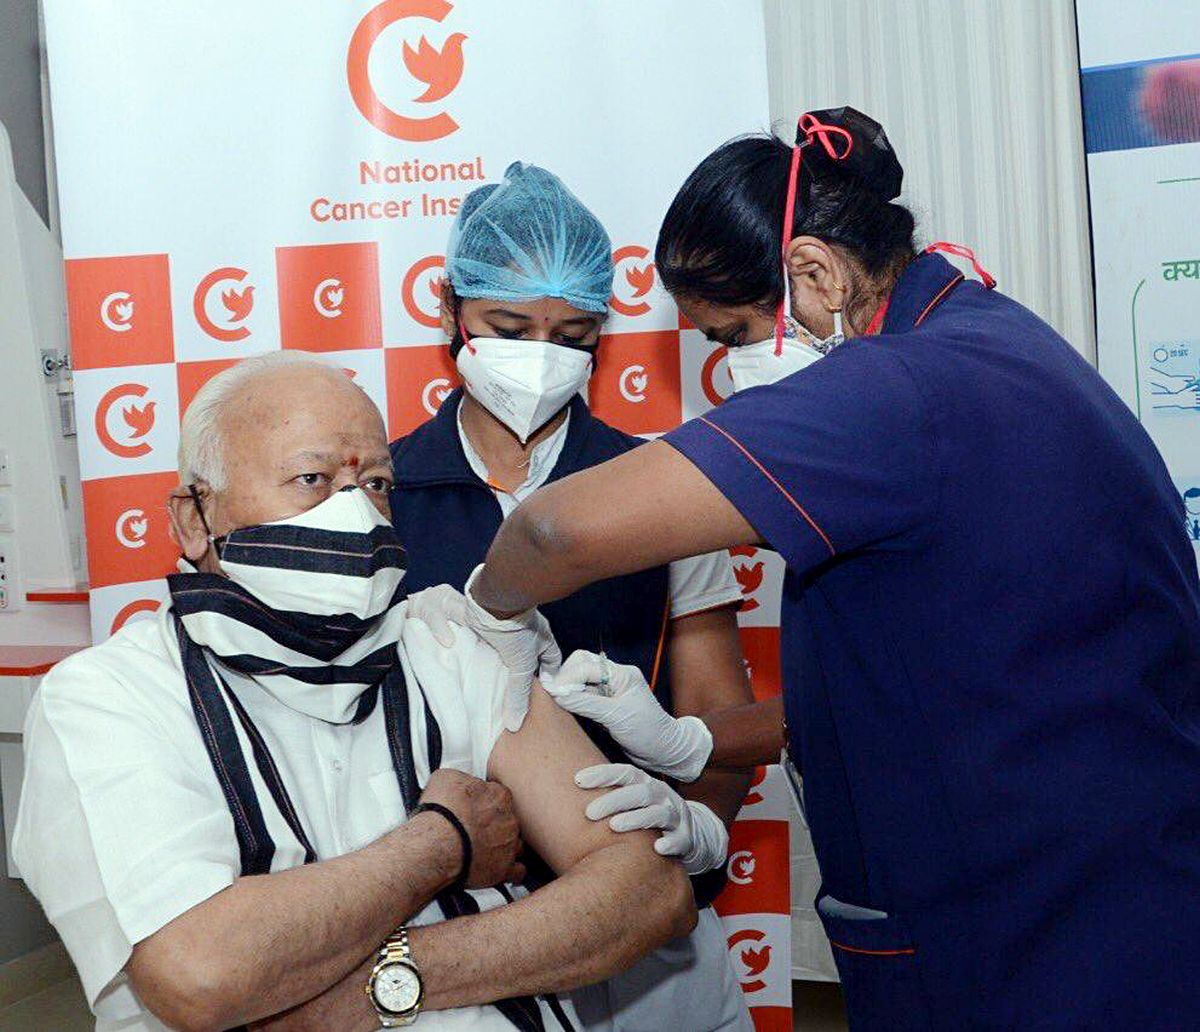 Infections rise in Nagpur with second wave